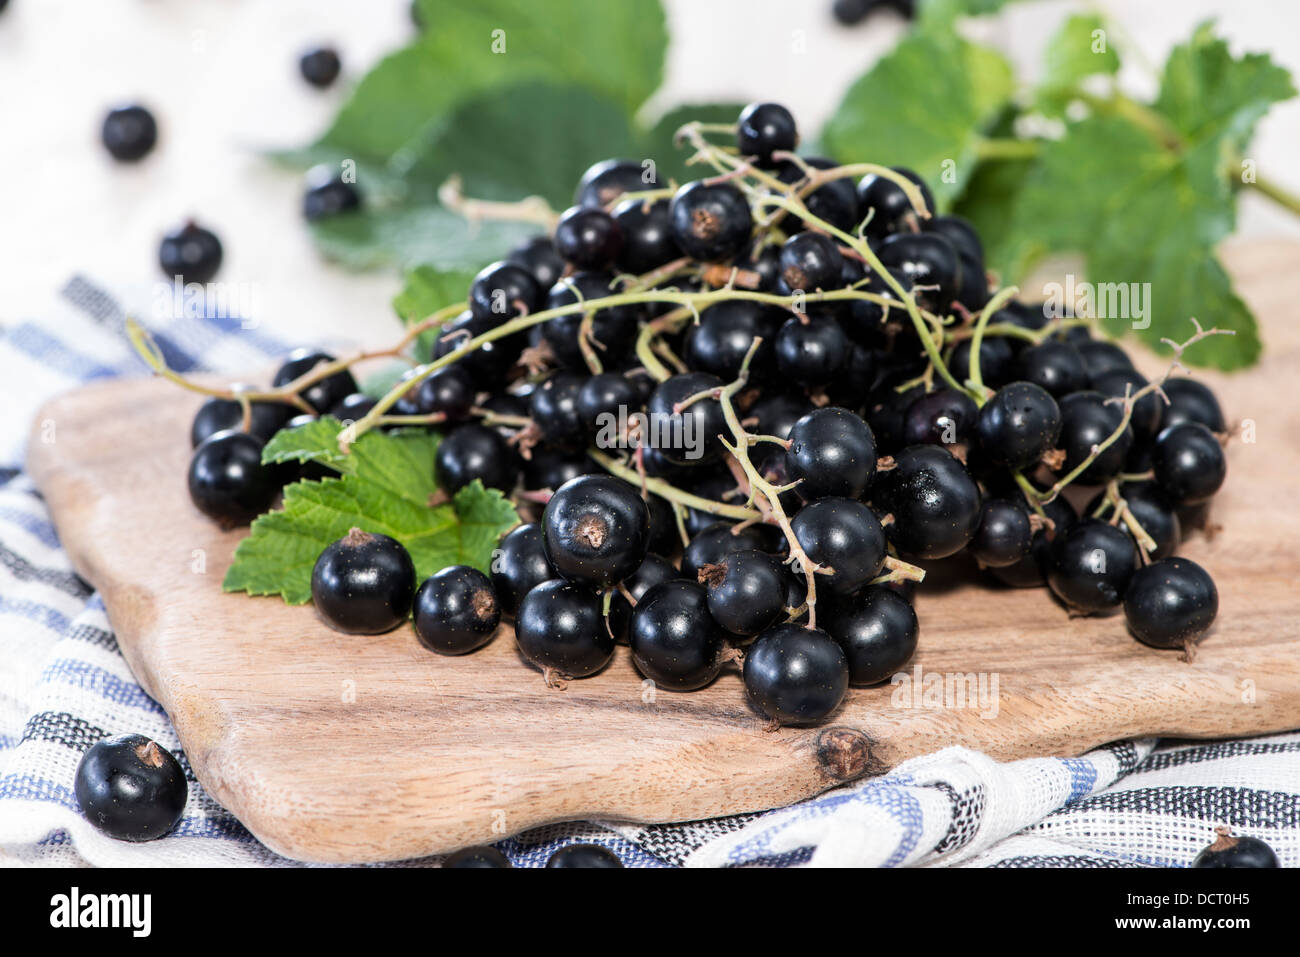 Heap of Black Currants on wooden background Stock Photo